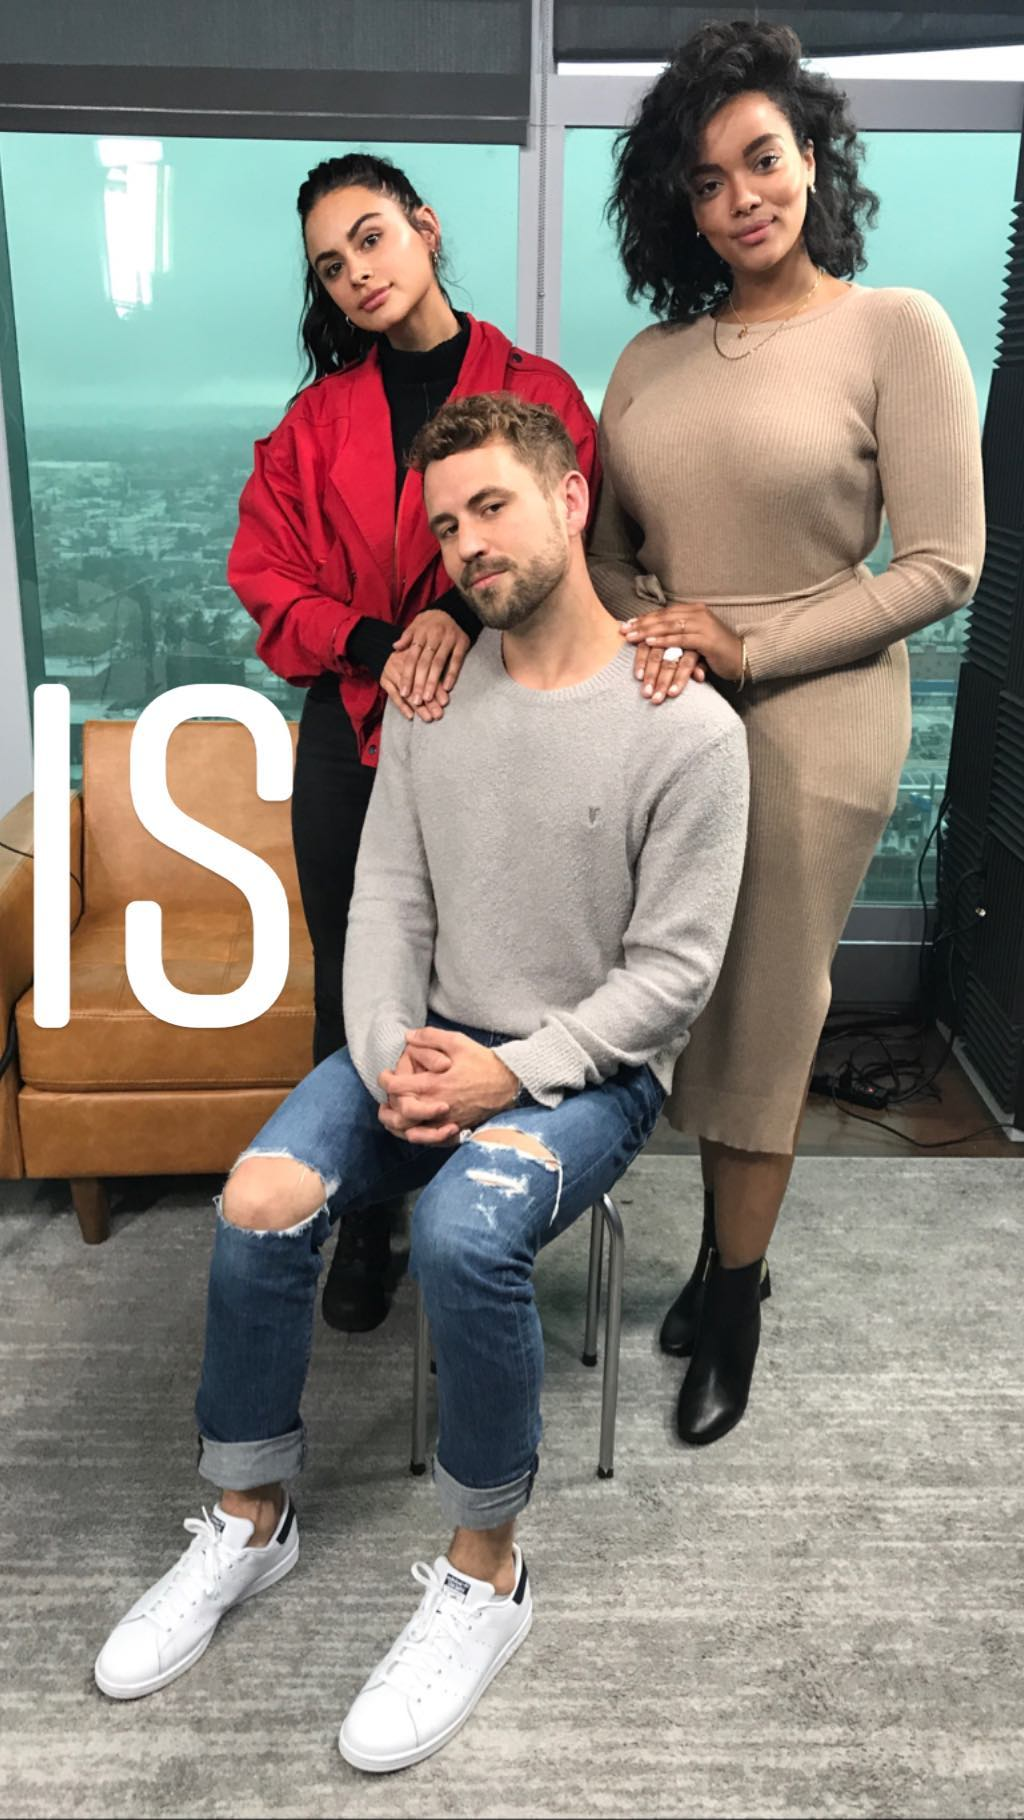 Nick Viall - Bachelor 21 - FAN Forum - Discussion #27 - Page 51 51712110